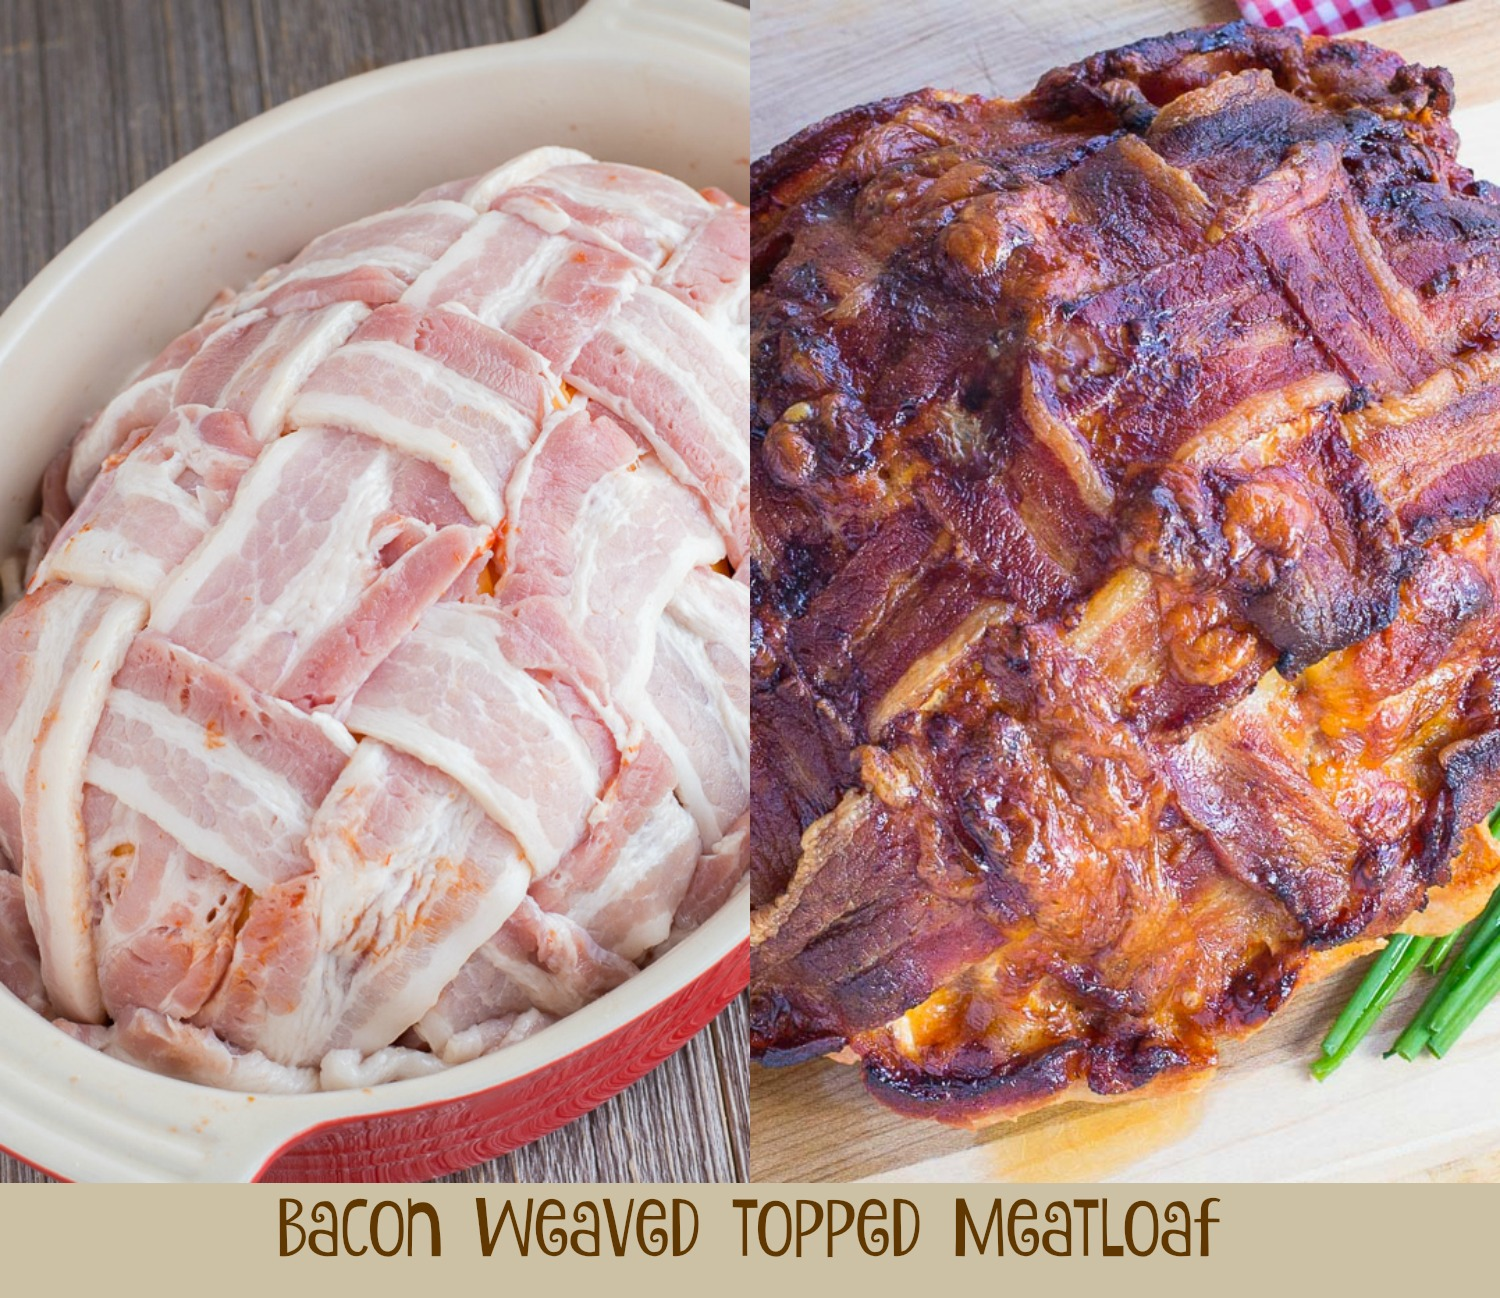 Bacon weaved meatloaf